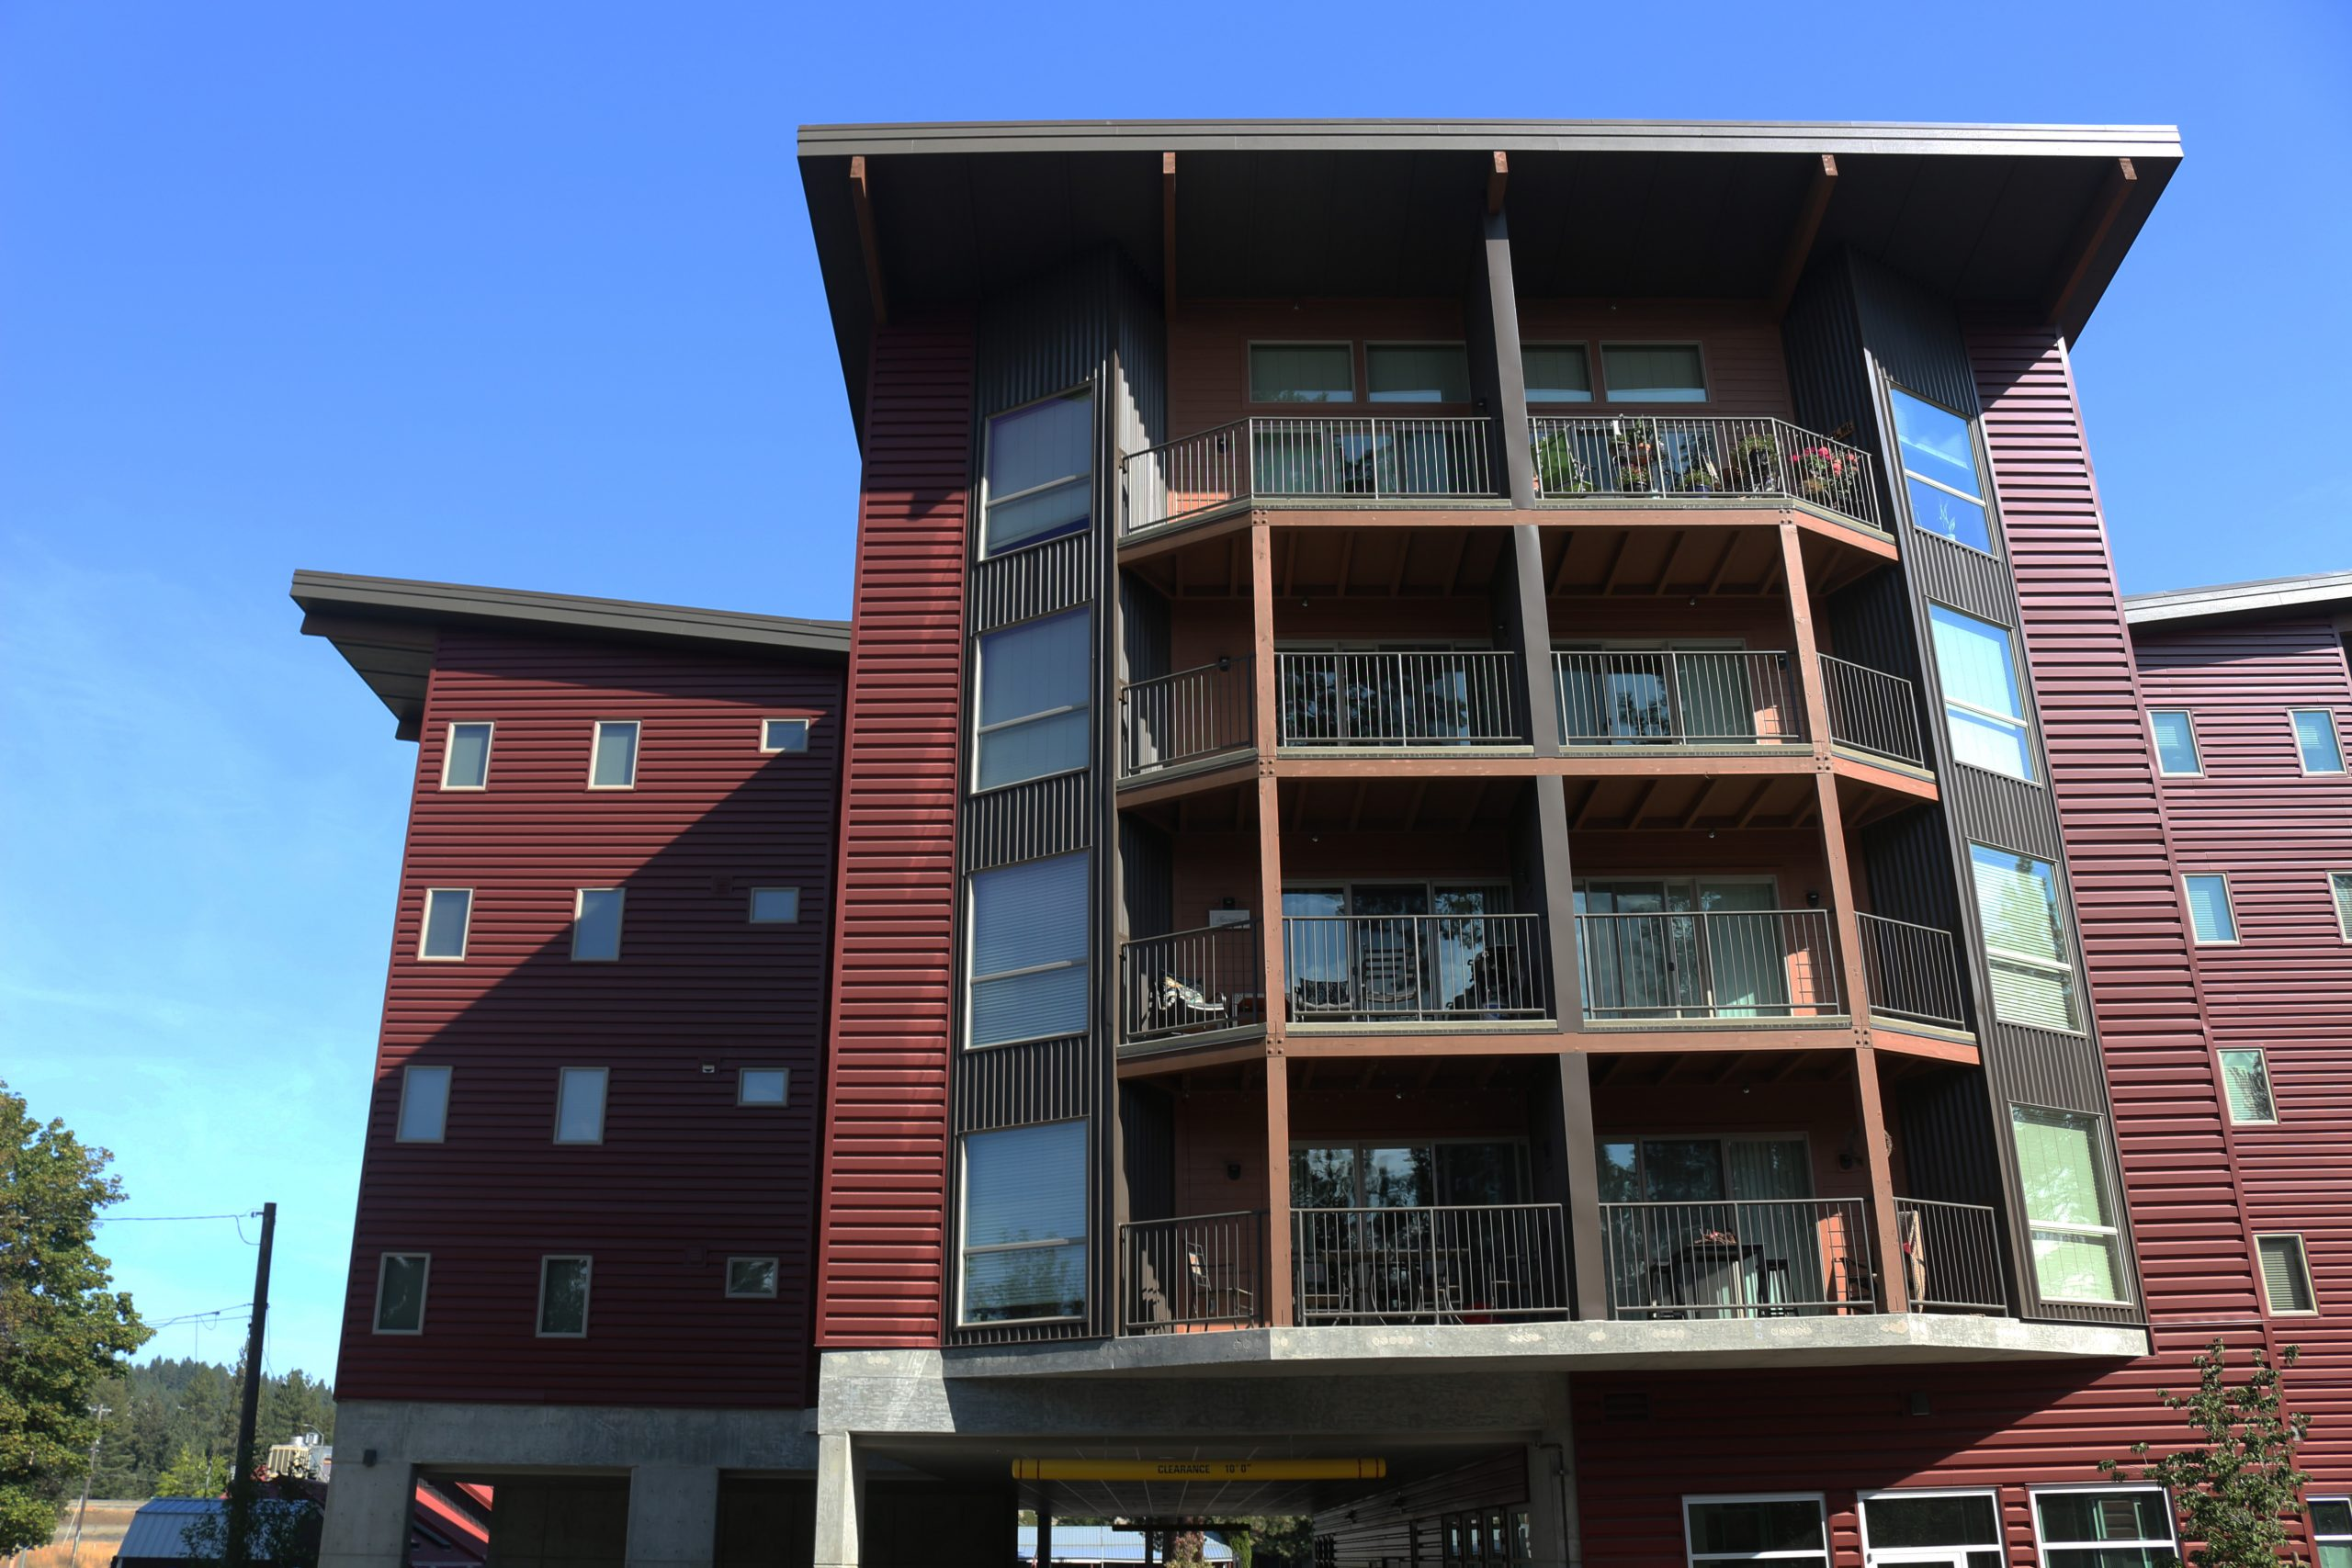 Lake Drive Apartments is a mixed-use project located in Coeur d'Alene Idaho and features a retail space that includes the local Bakery by the Lake.